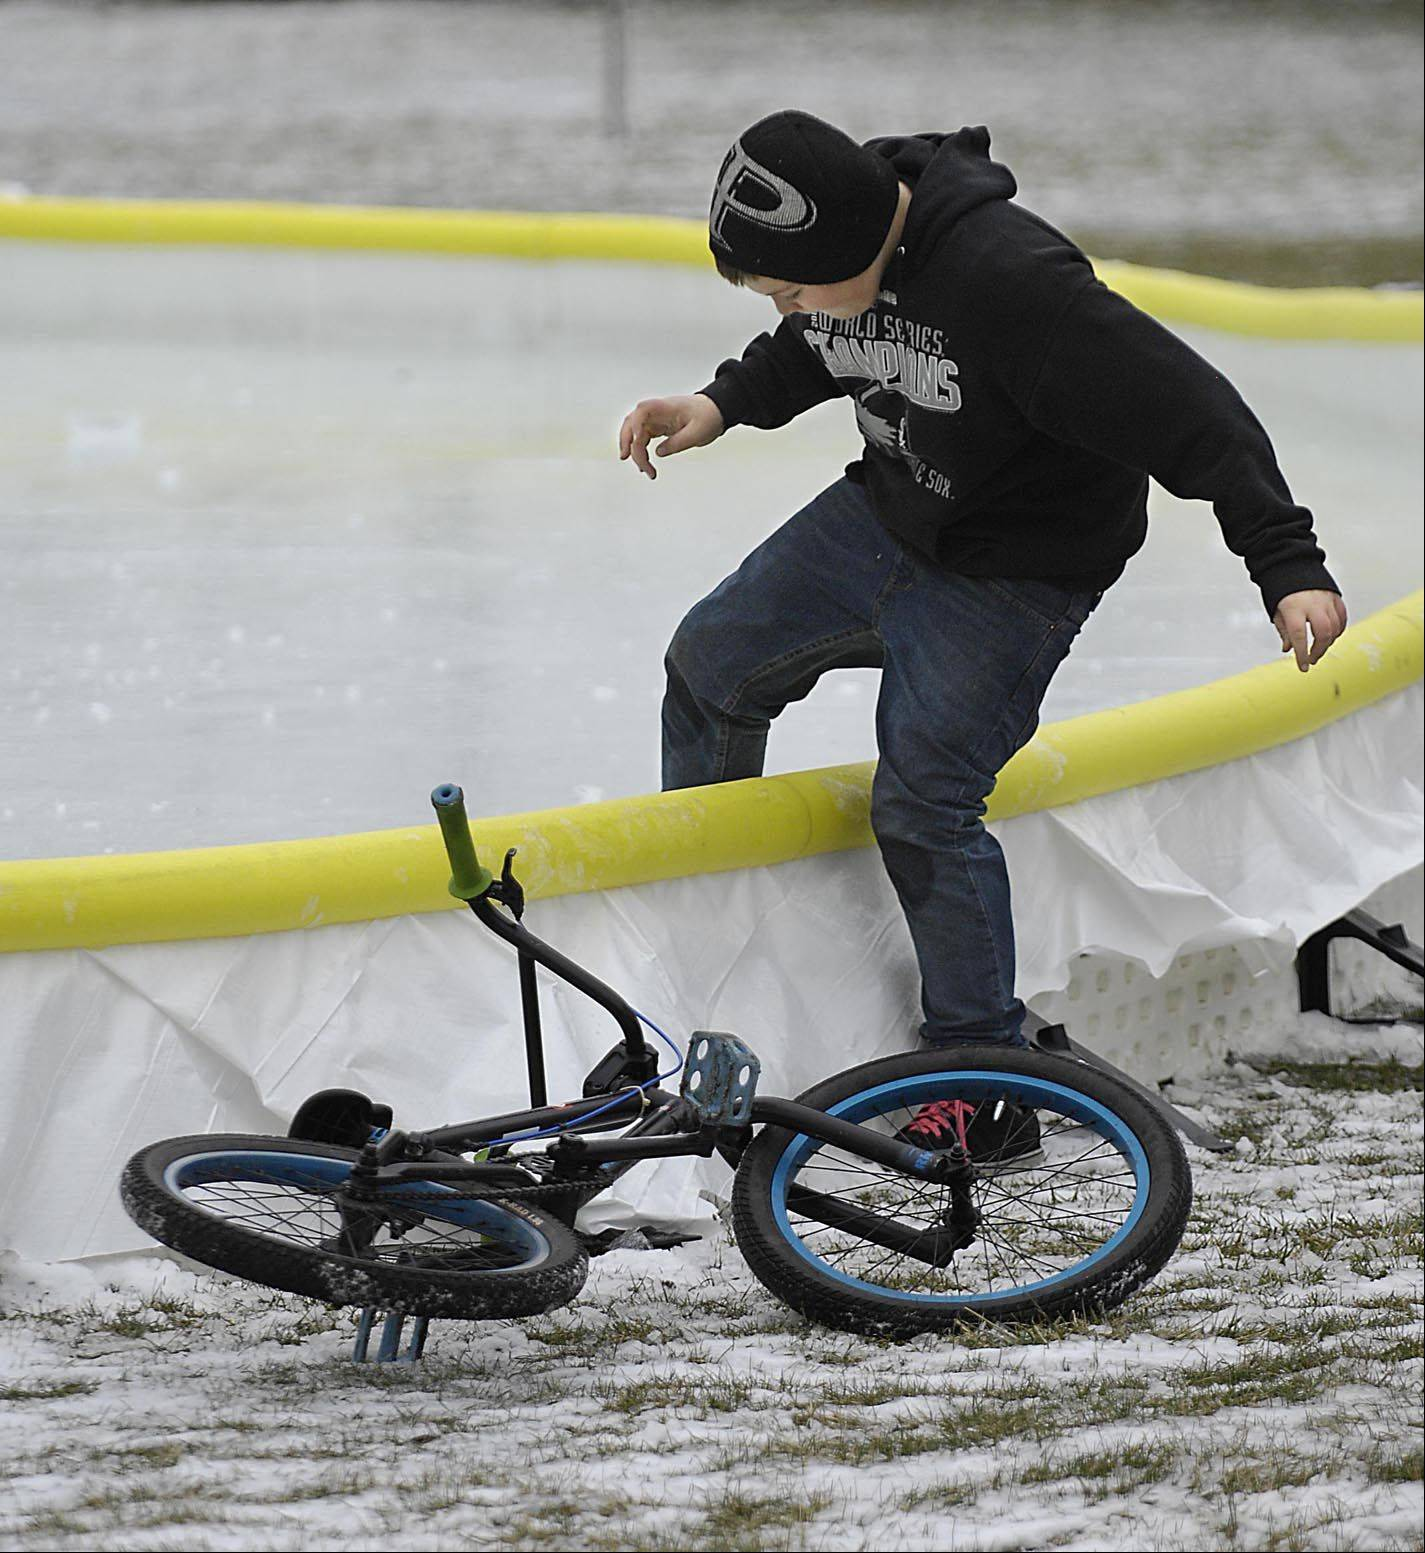 Curtis Bergstrom steps carefully over the edge of a temporary ice rink in County Park in South Elgin Monday. He and neighborhood friend Alex Bowers rode their bikes to the park and spent time sliding on the thin ice. They are both 12 and said the ice cracked as they walked.